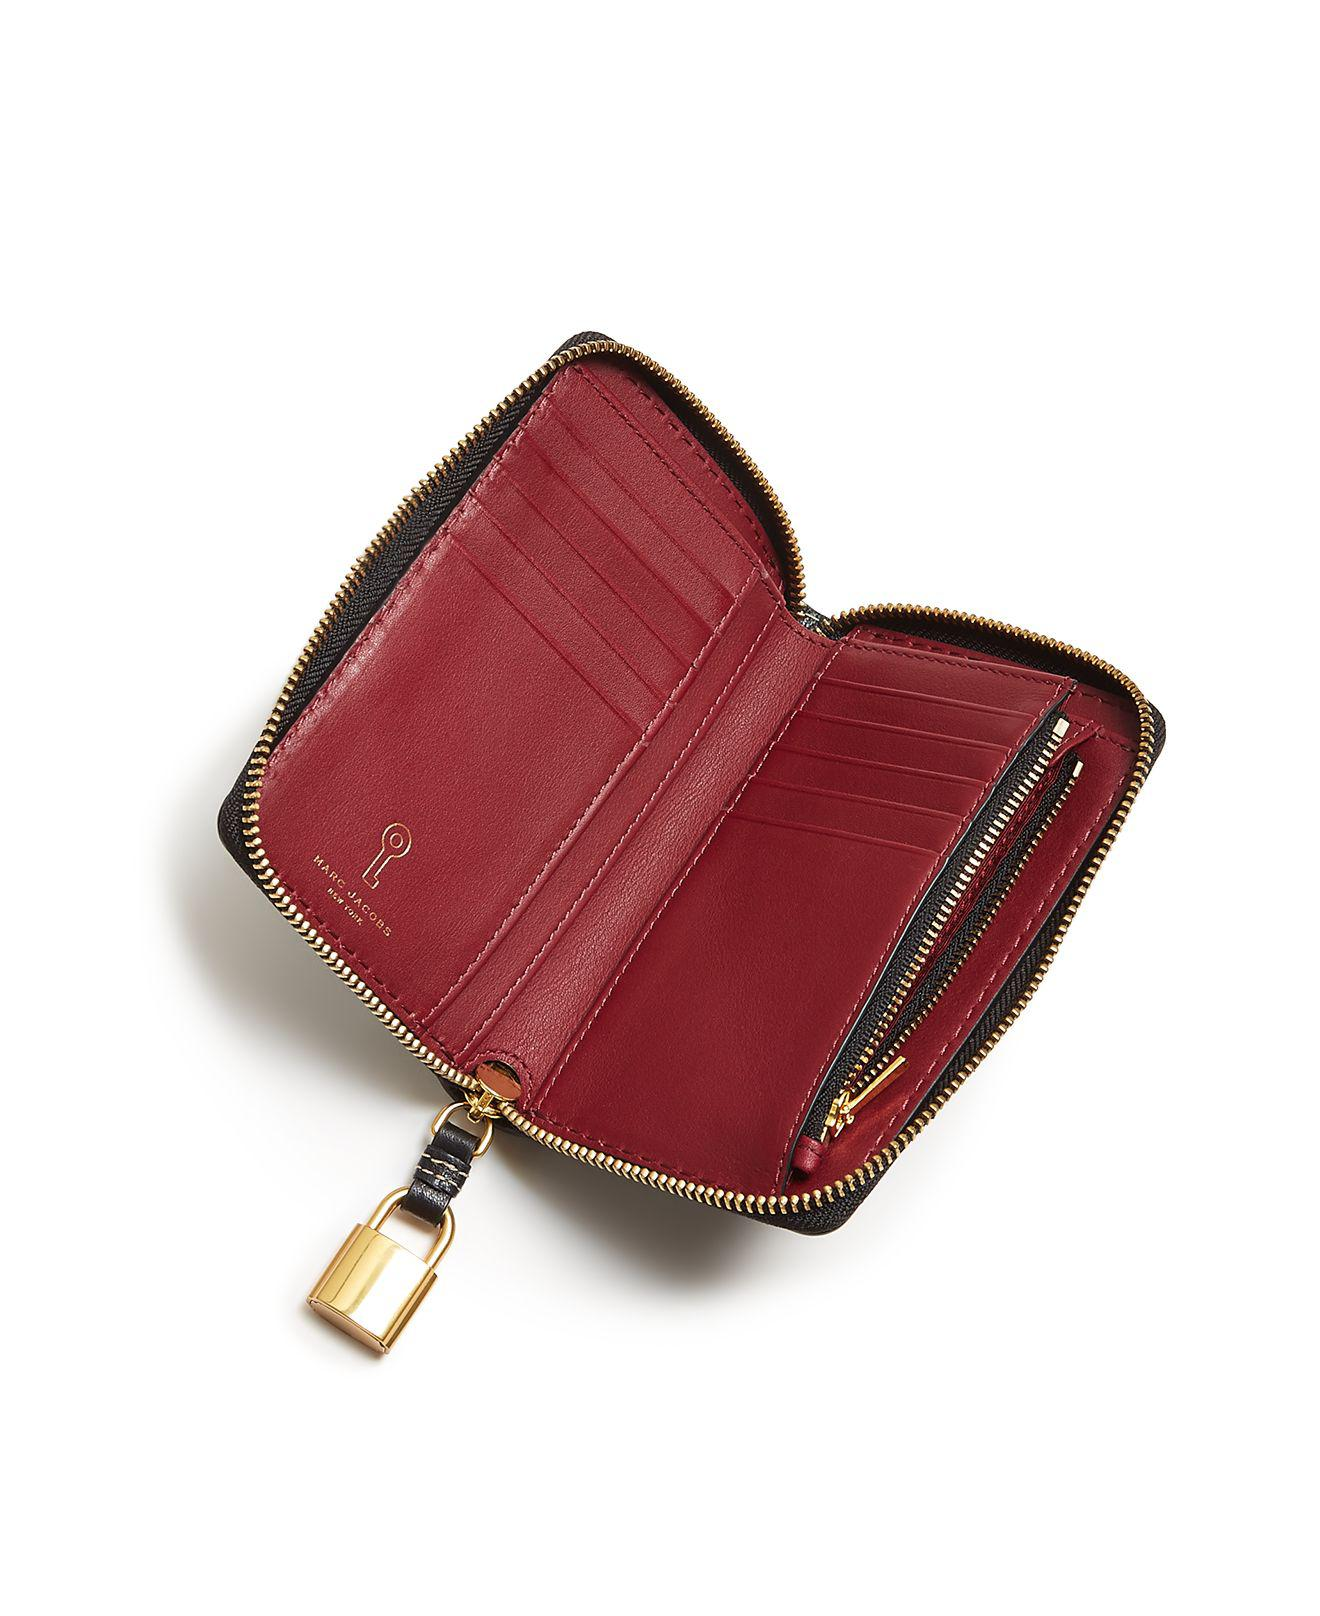 Marc Jacobs The Grind Small Standard Leather Wallet Buy Cheap Fast Delivery 5oLuy